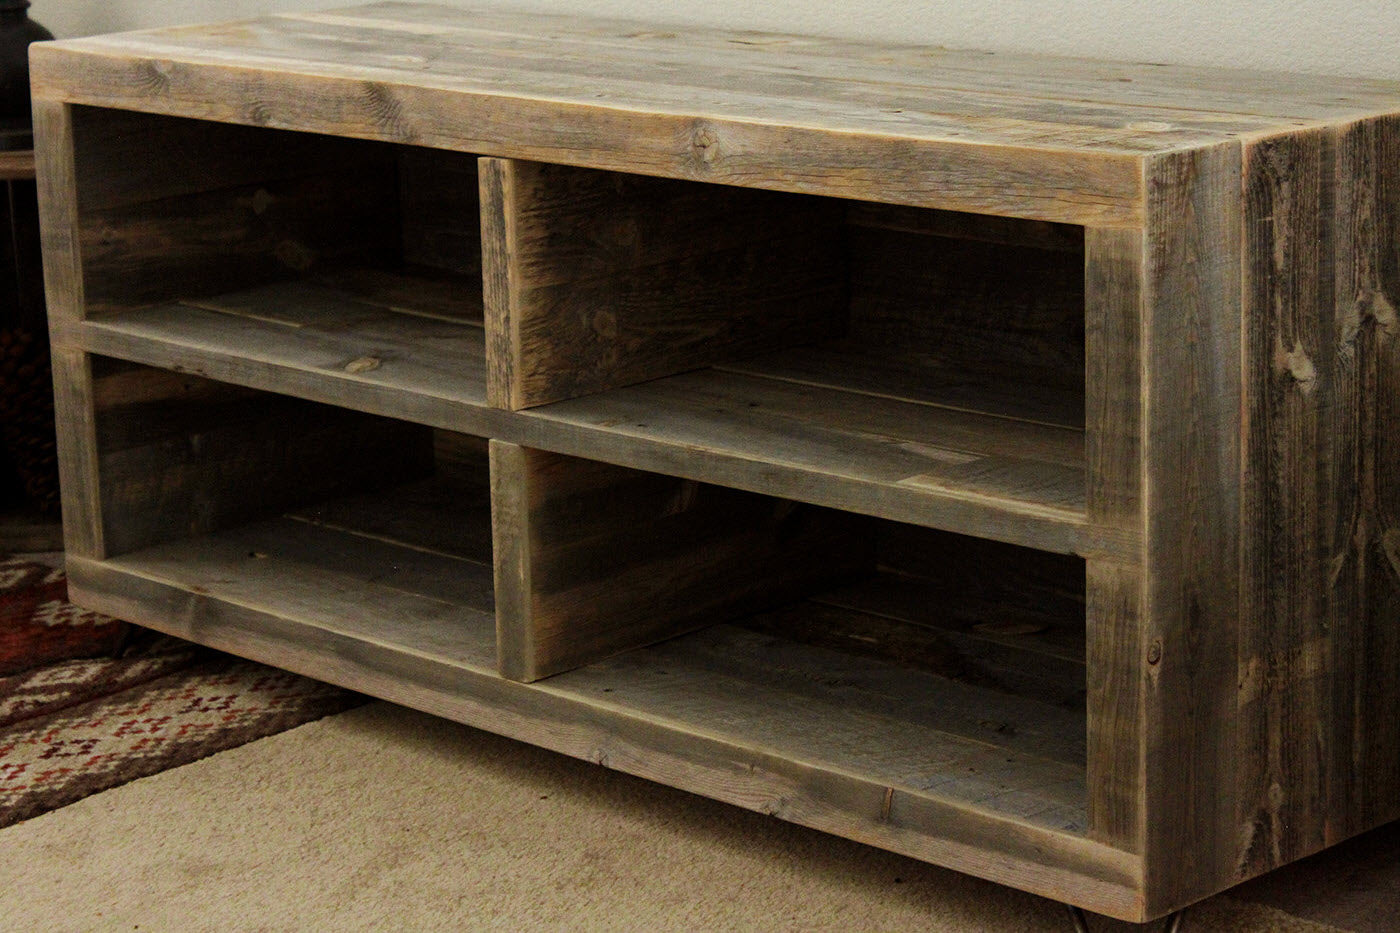 Made from solid reclaimed Wyoming wood snow fence, it offers generous  storage for media components. Each unit is designed, built, and finished by  a single ... - Alamo Reclaimed Wood Bookshelf - The Spotted Door